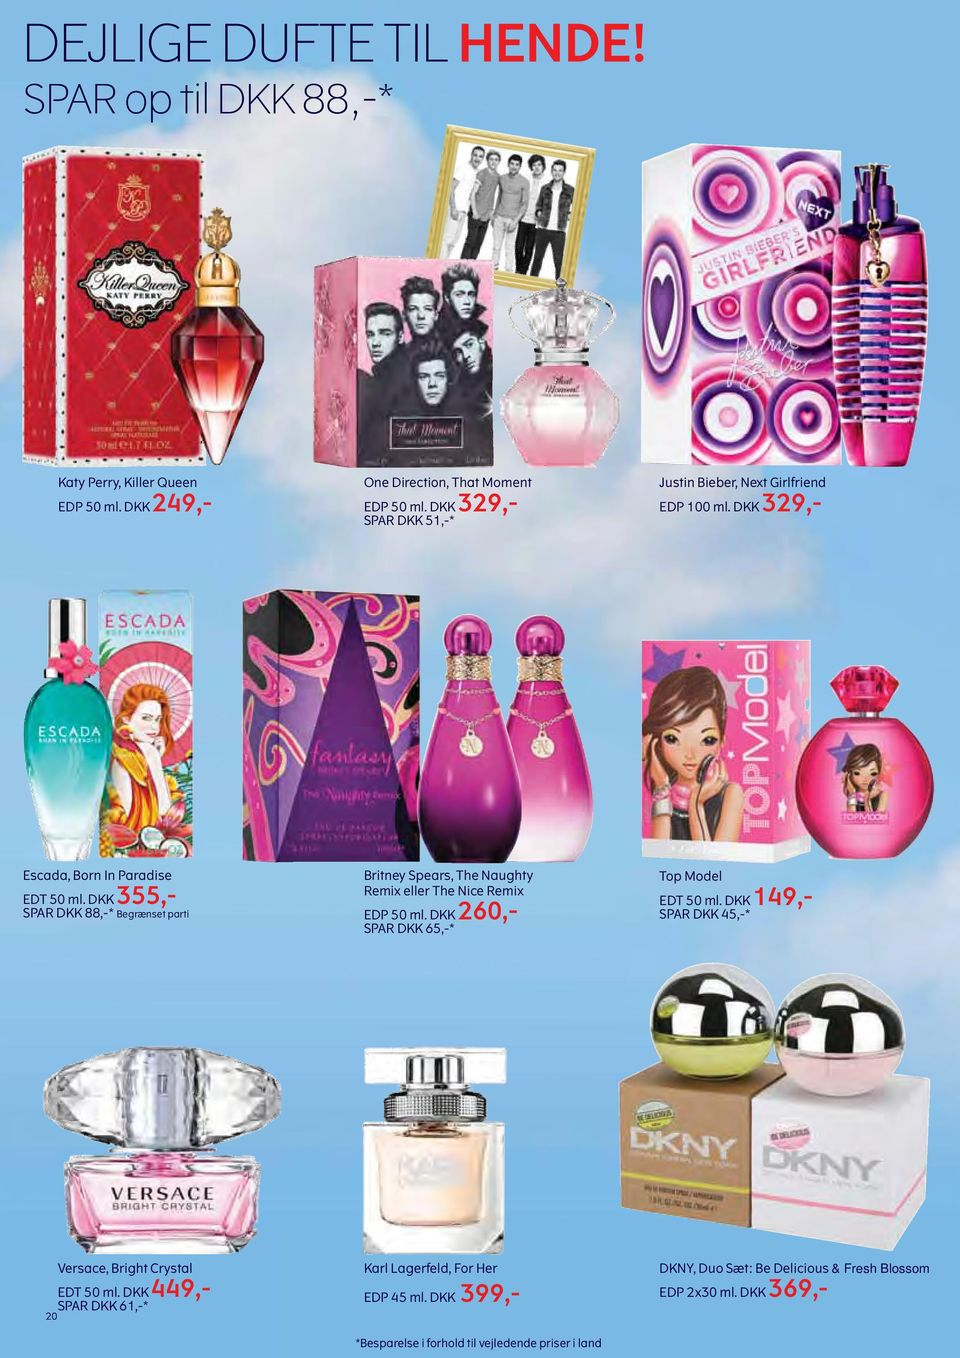 DKK 355,- SPAR DKK 88,-* Begrænset parti Britney Spears, The Naughty Remix eller The Nice Remix EDP 50 ml. DKK 260,- SPAR DKK 65,-* Top Model EDT 50 ml.